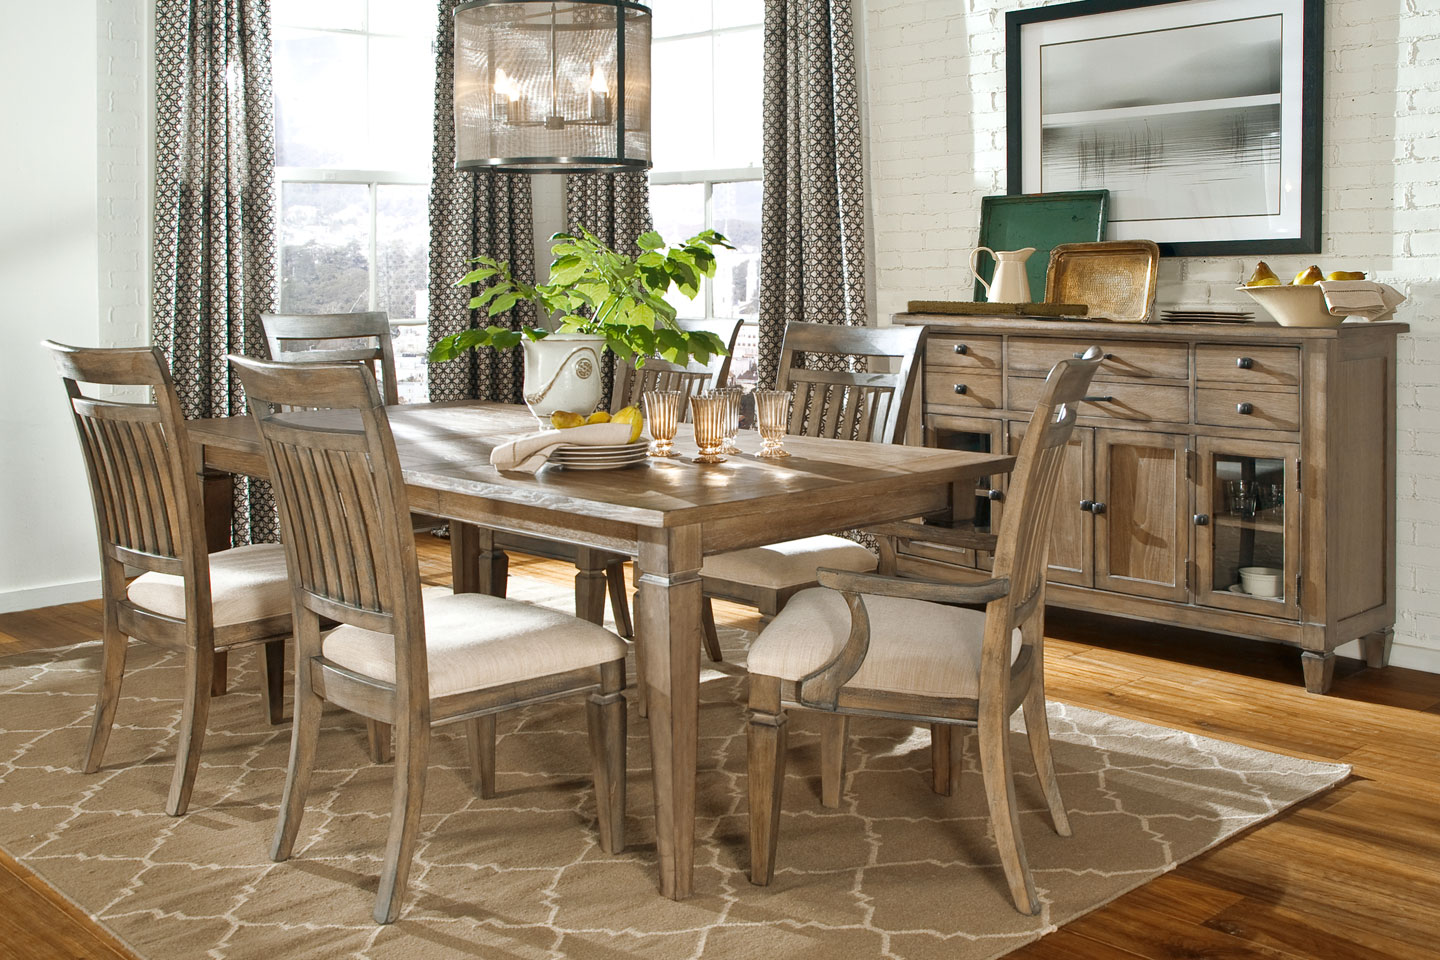 Gavin rustic formal dining room set fine dining furniture for Fine dining room furniture